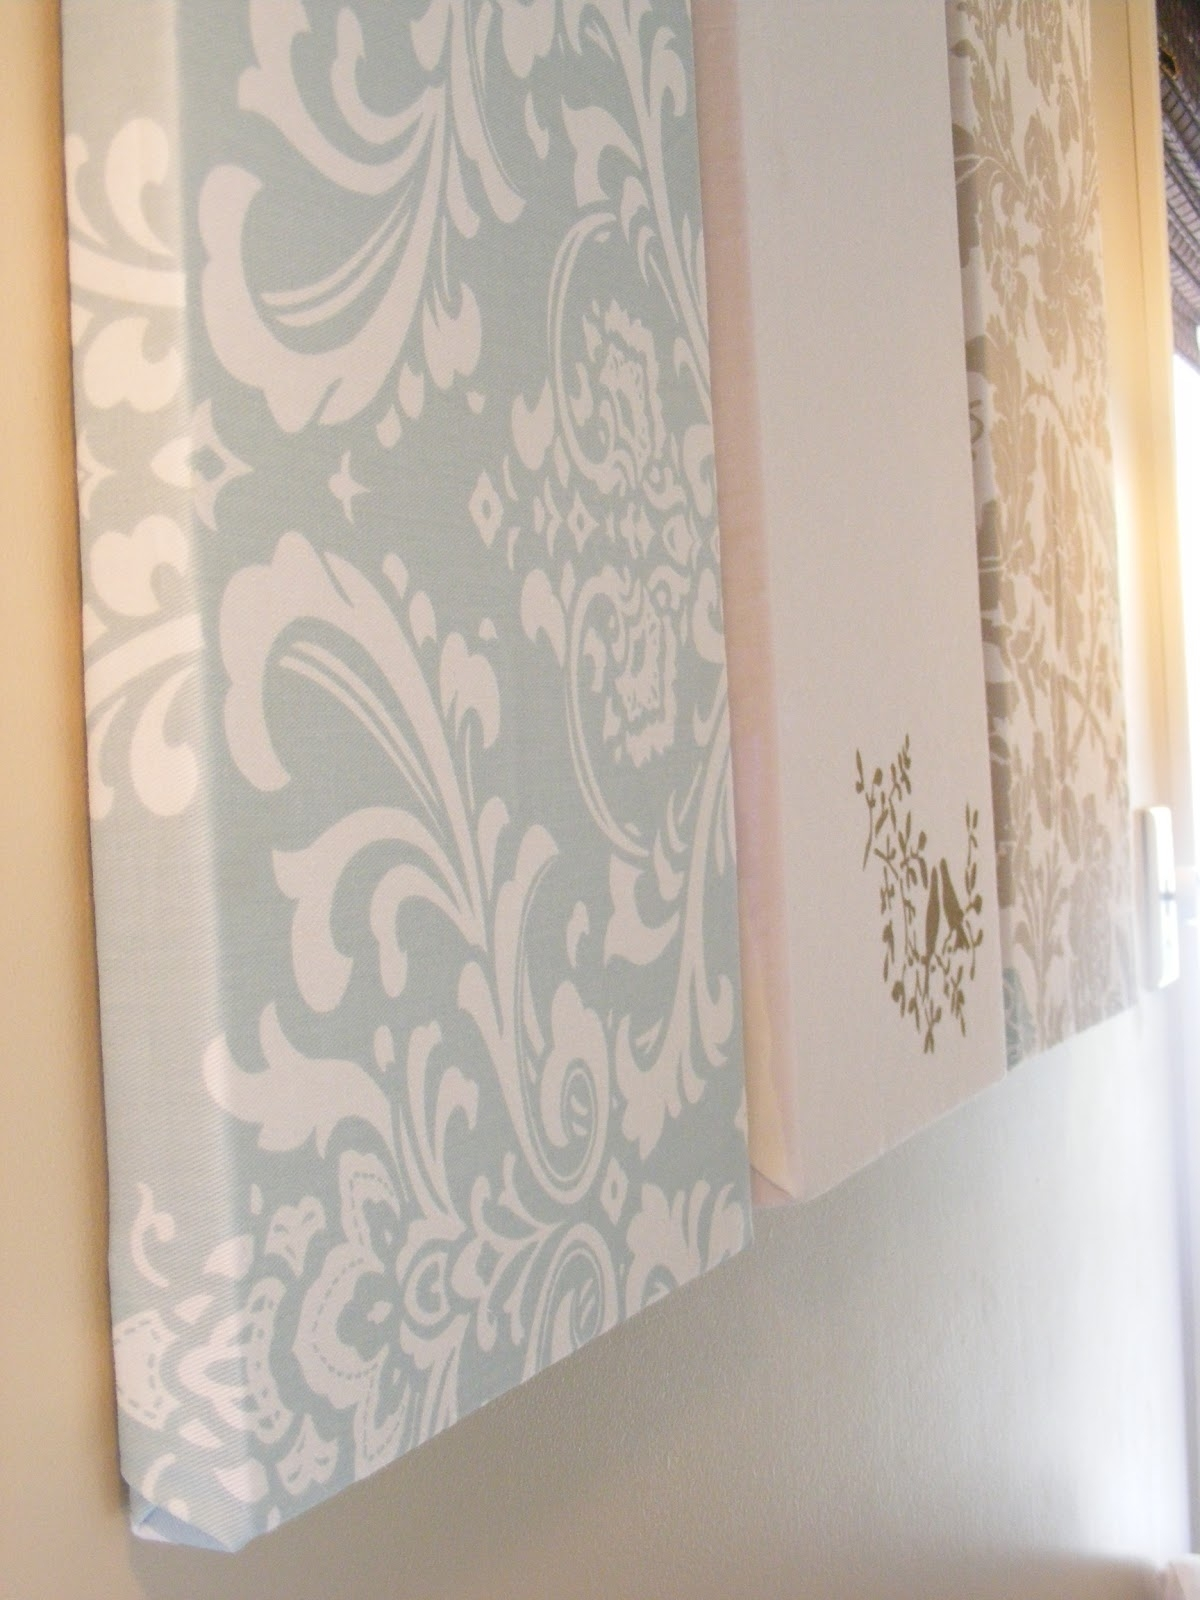 The Complete Guide To Imperfect Homemaking: Simple, Thrifty Diy Art Pertaining To Most Recently Released Damask Fabric Wall Art (View 5 of 15)